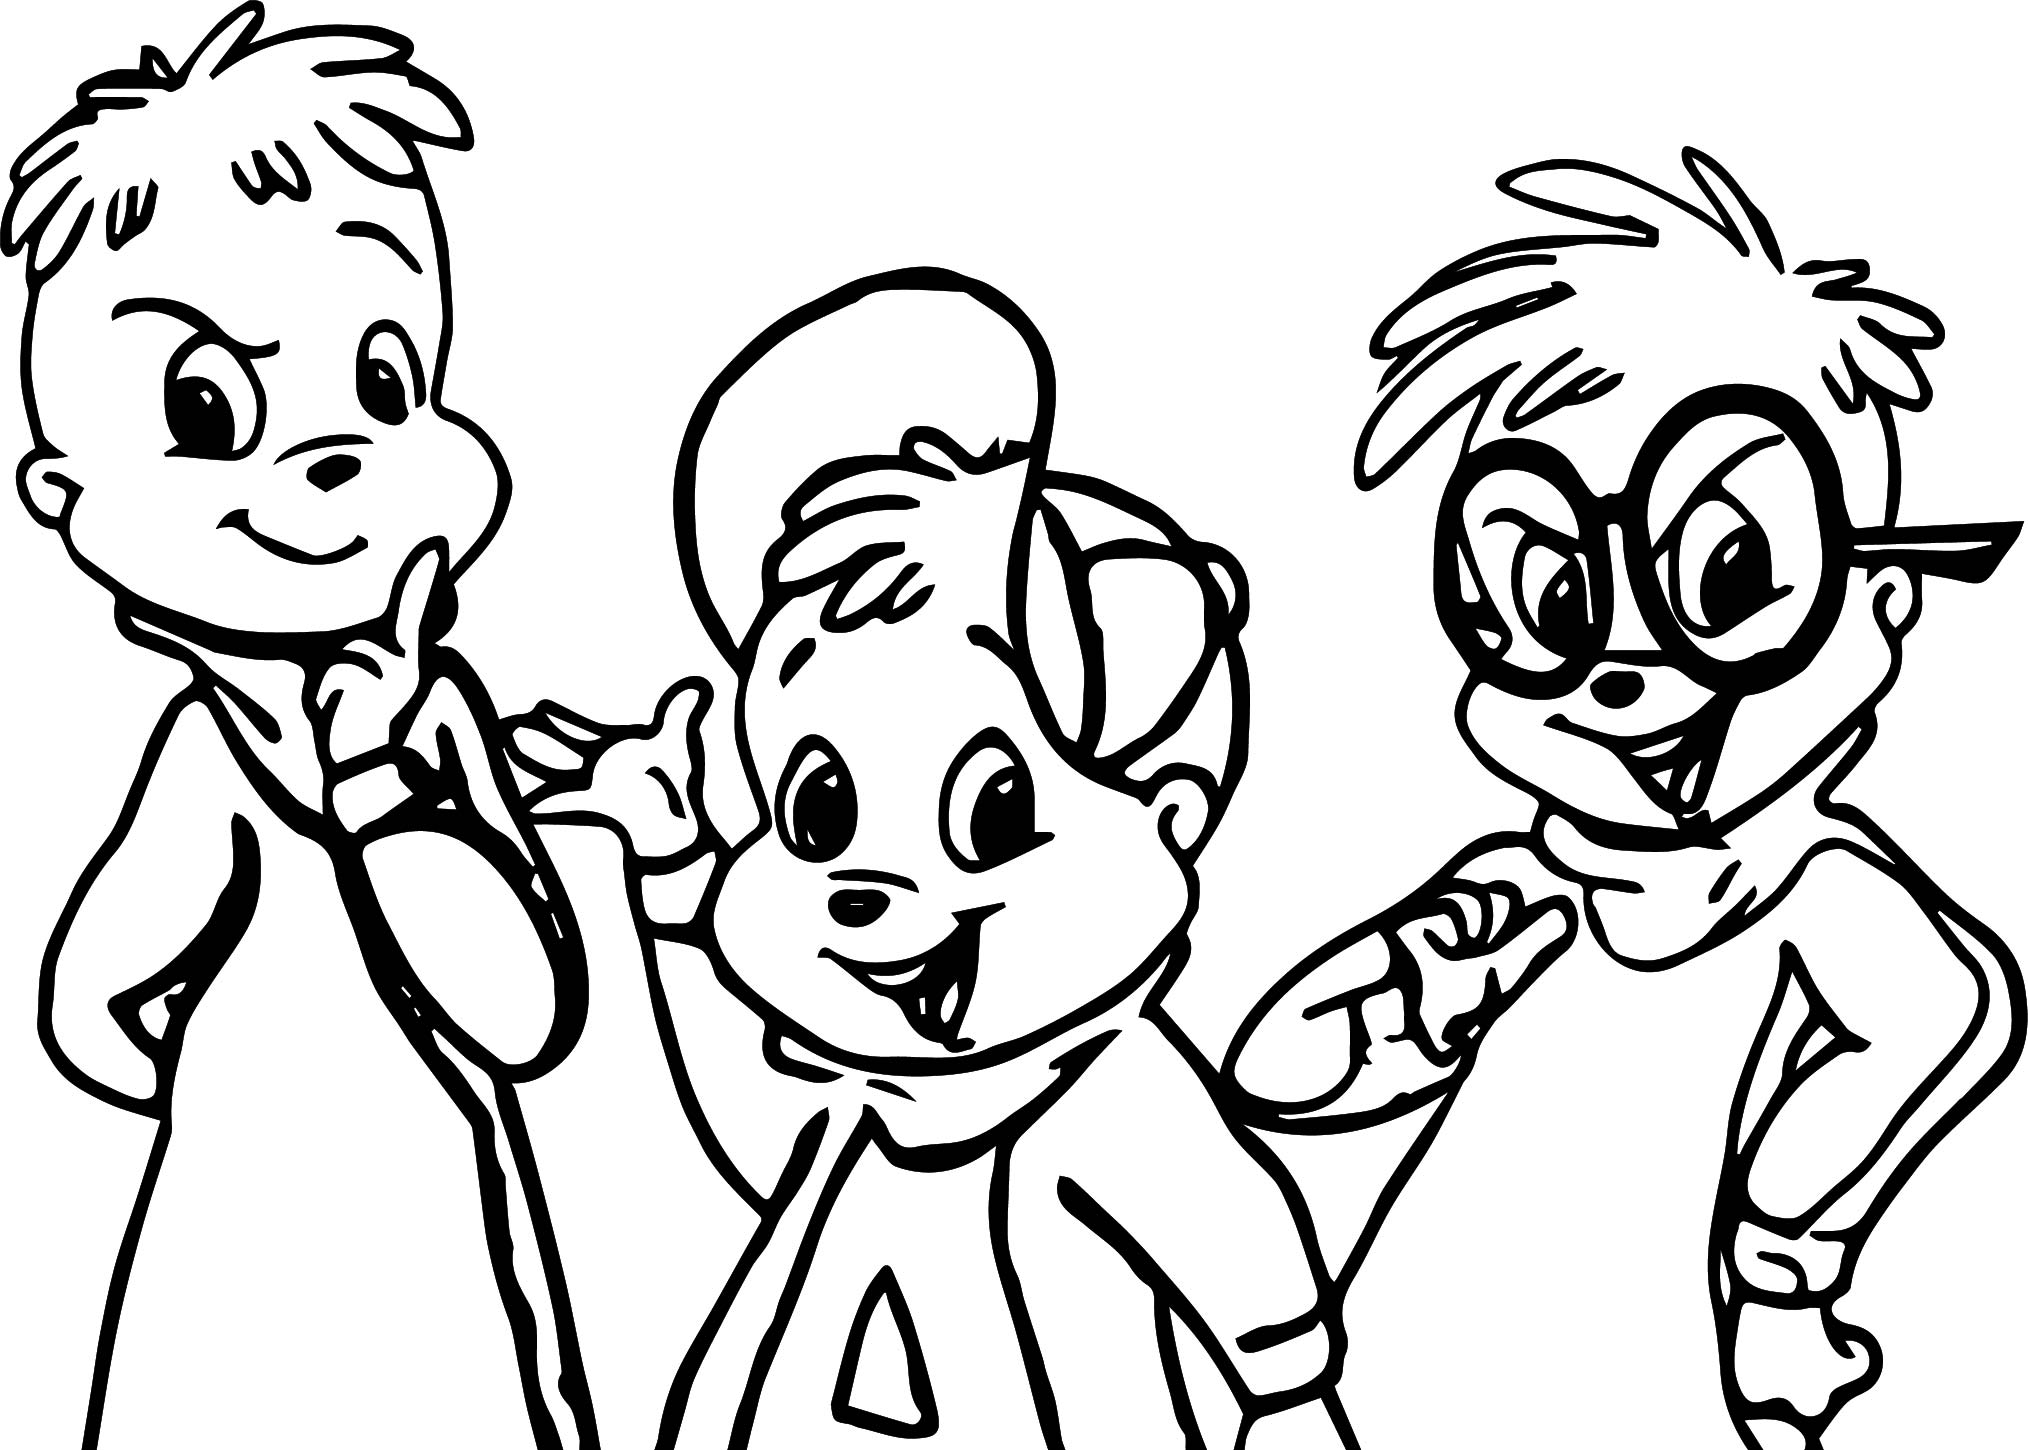 alvin and the chipmunks coloring pages alvin and the chipmunks coloring pages alvin chipmunks the coloring pages and